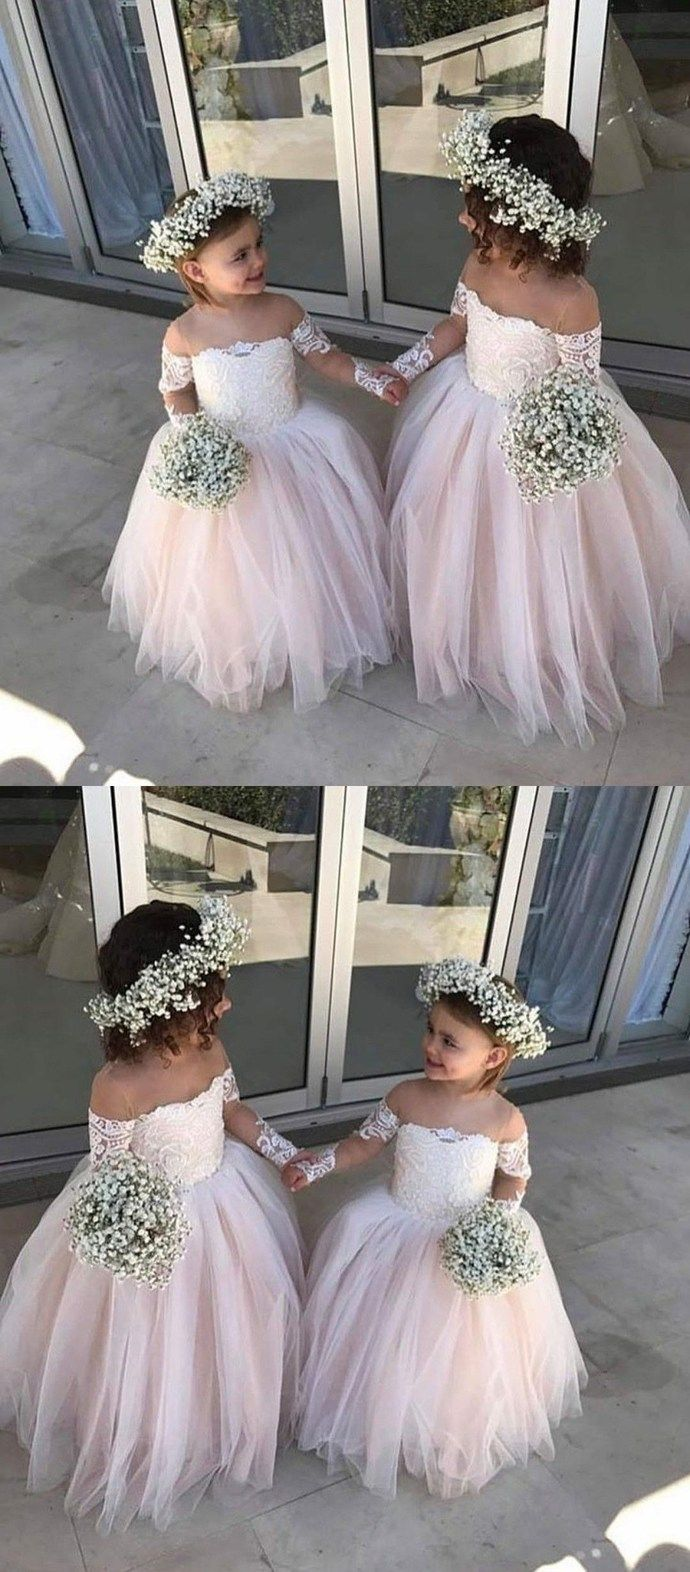 630f6393e Adorable Flower Girl Dresses For Weddings , Little Girls Off the Shoulder  Wedding Dress | Lace flower girls | Toddler flower girl dresses, Wedding  dresses, ...